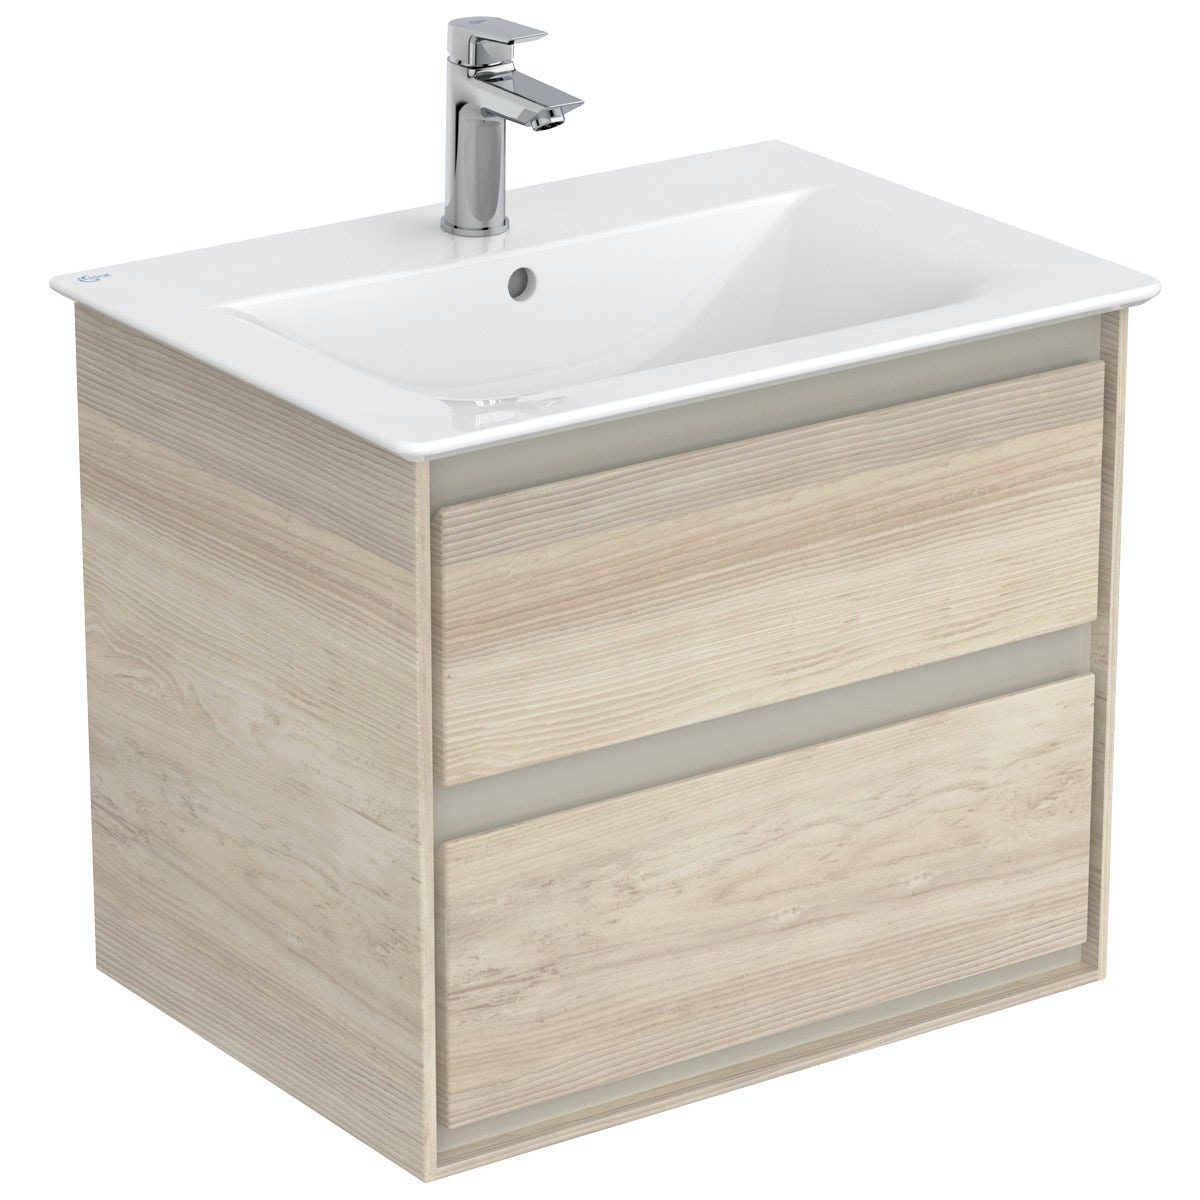 Ideal Standard Concept Air wood light brown wall hung vanity unit and basin 600mm